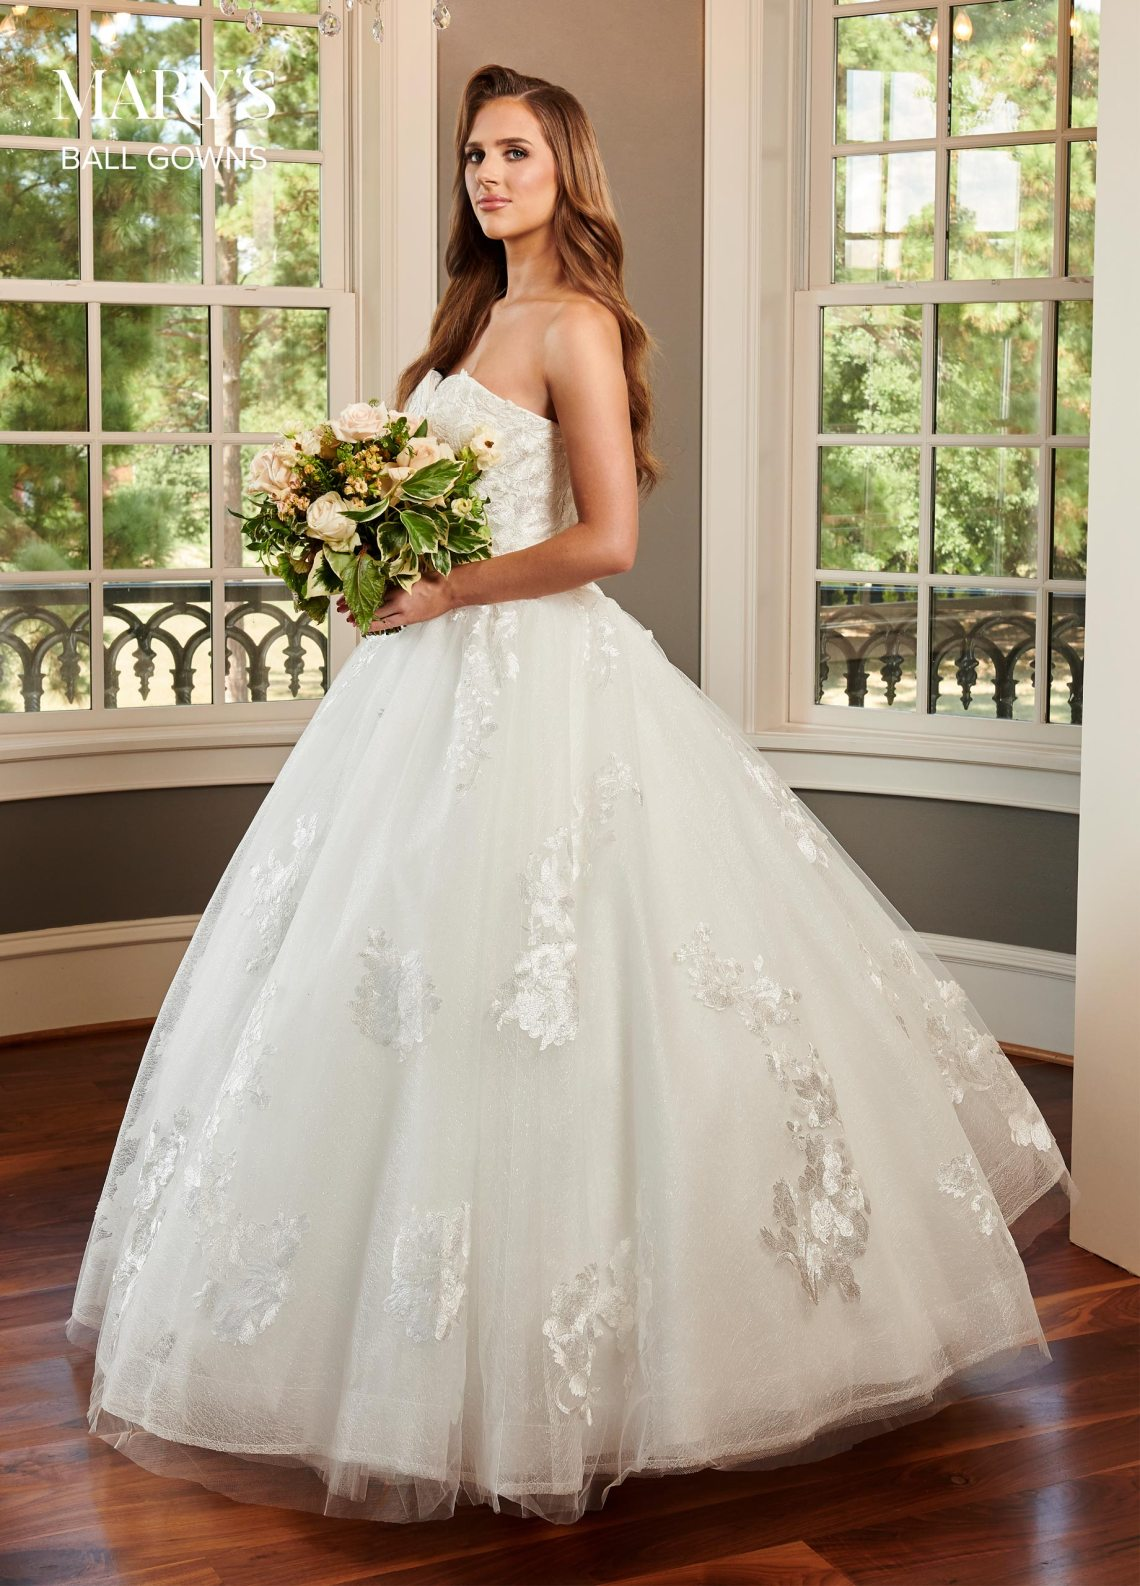 Bridal Ball Gowns | Style - MB6063 in Ivory or White Color